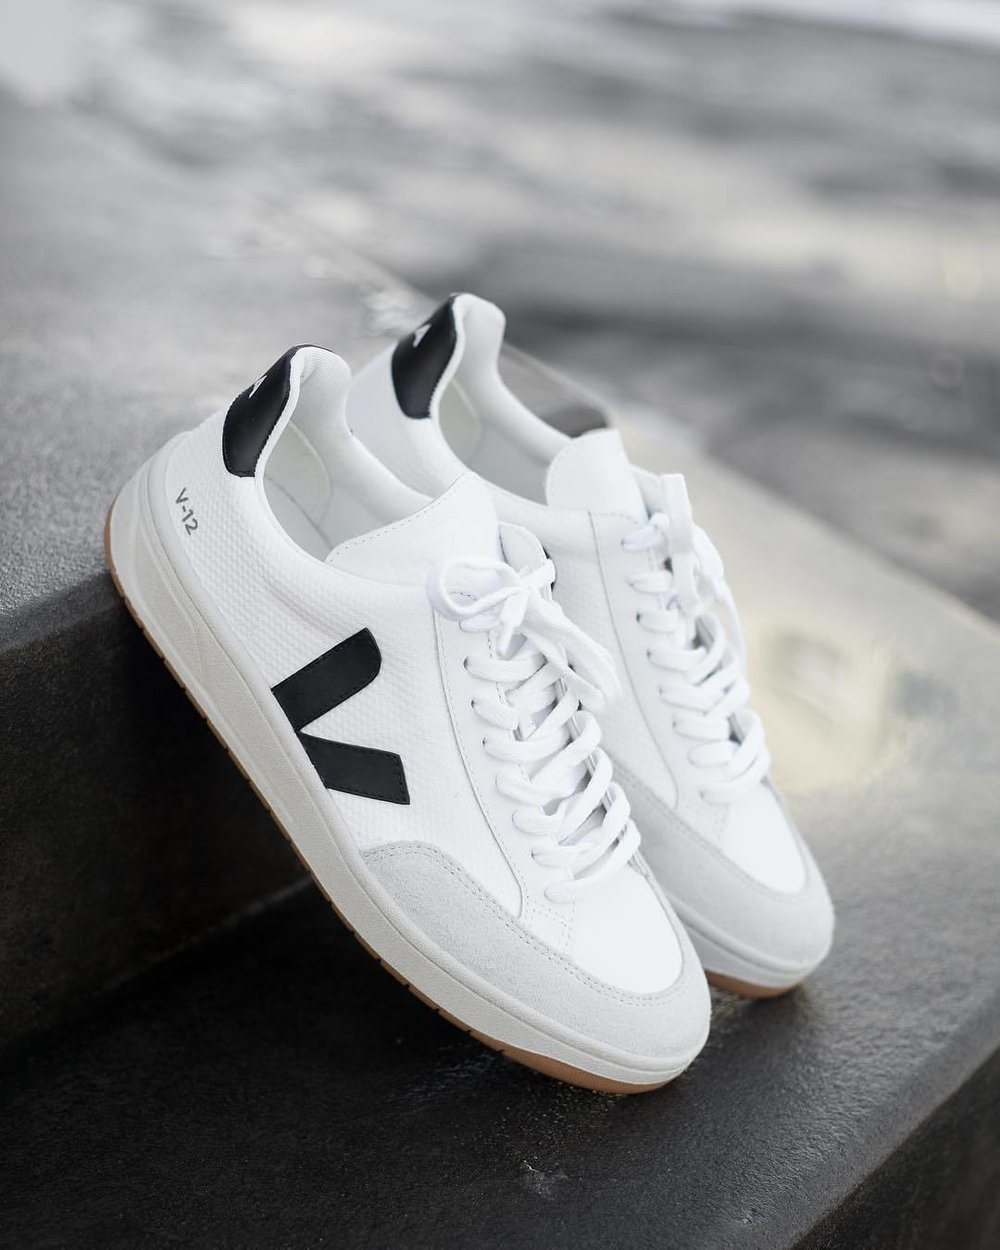 VEJA to open first store in New York